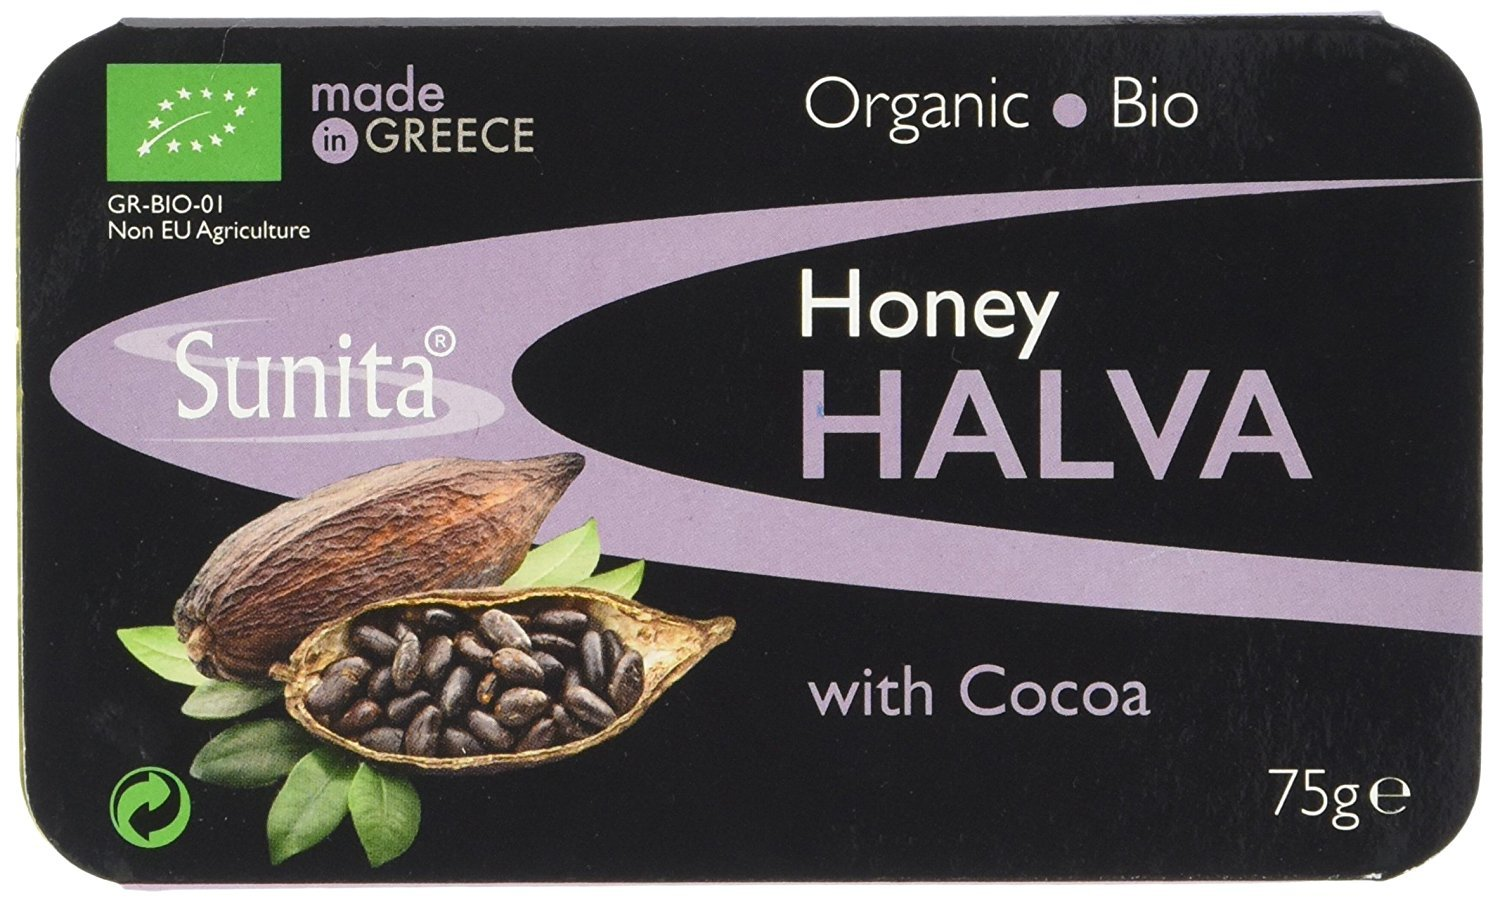 (10 PACK) - Sunita - Org Dark Chocolate Halva | 75g | 10 PACK BUNDLE by Sunita Enterprises